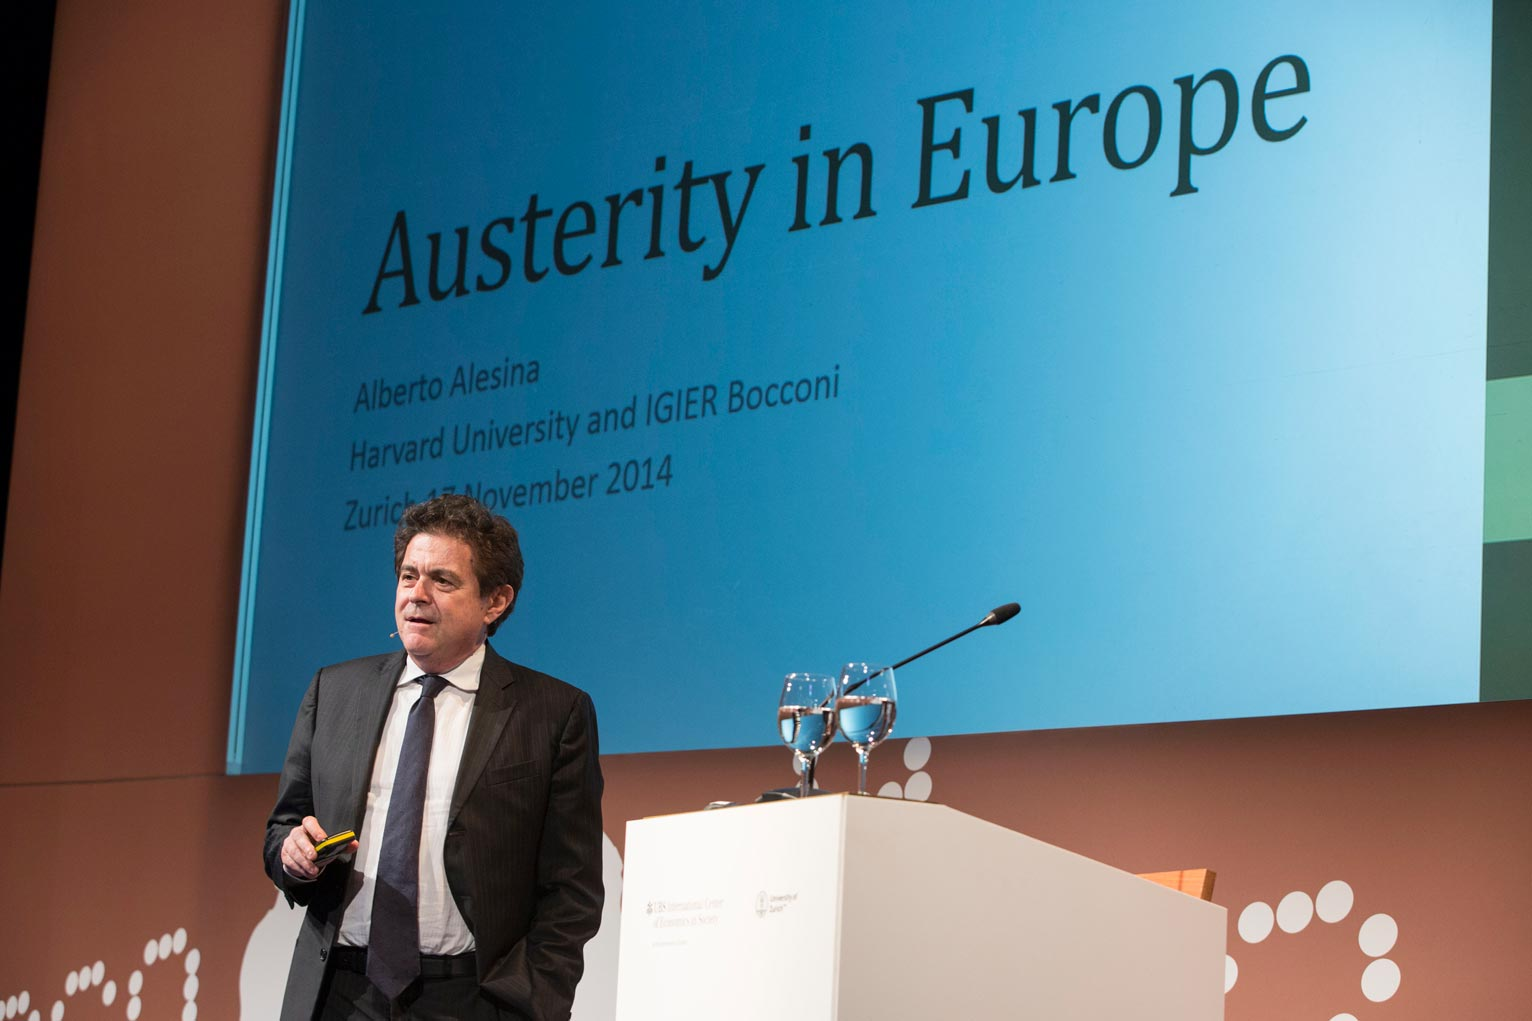 Alberto Alesina criticized Europe for not applying anti-cyclical fiscal policies